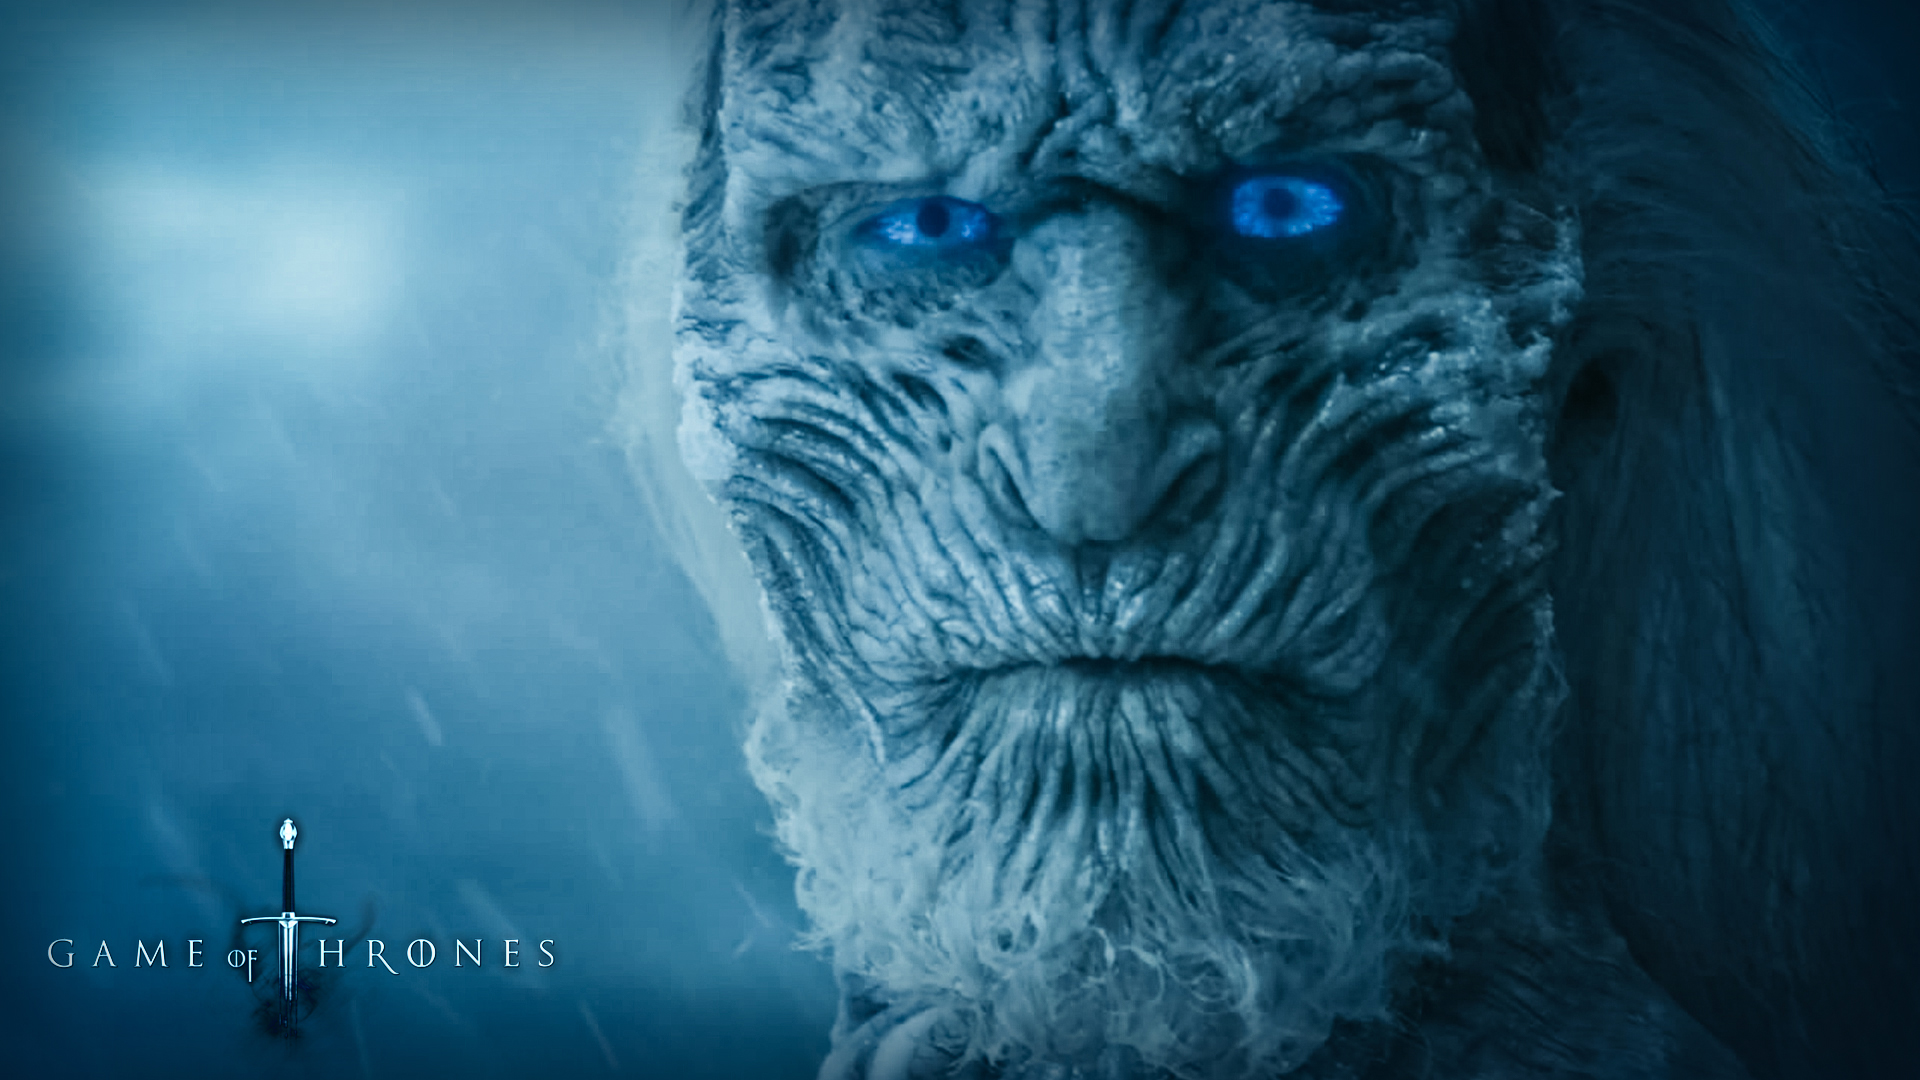 Game of Thrones wallpaper 51